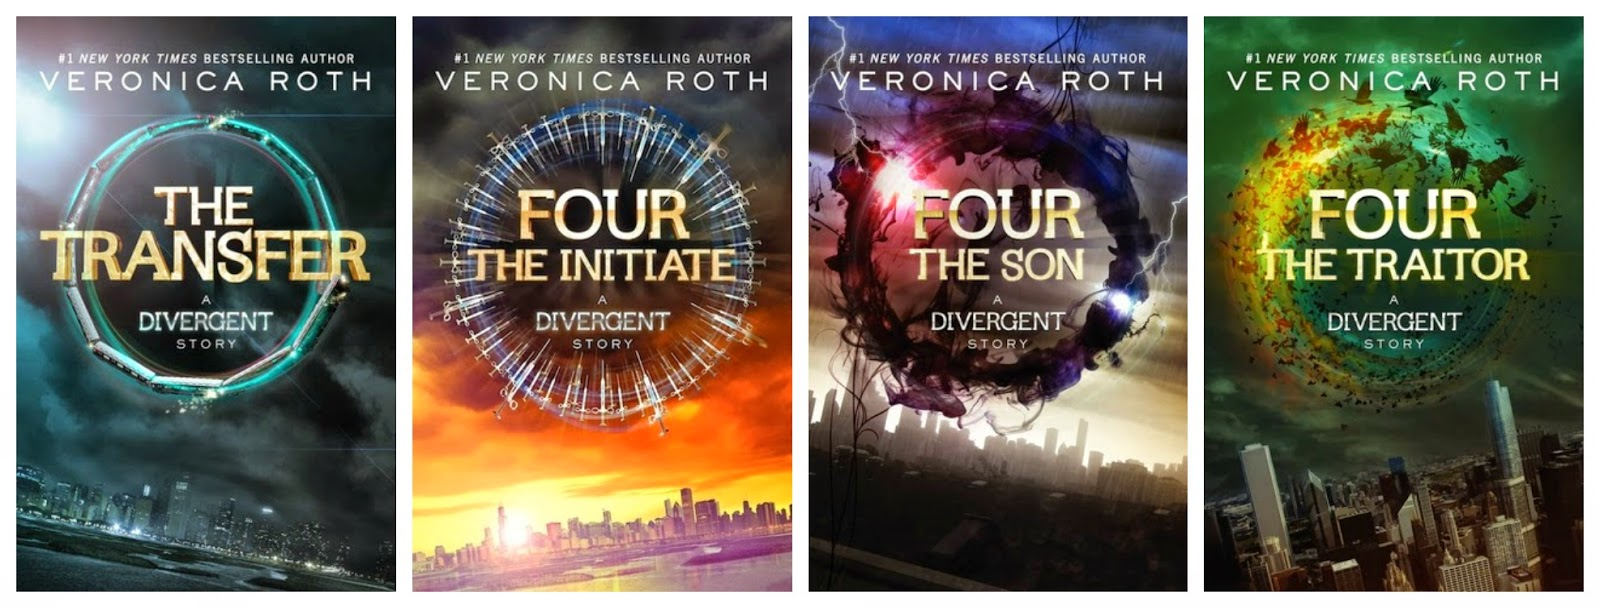 Four-Stories-Divergent-series-anteprima